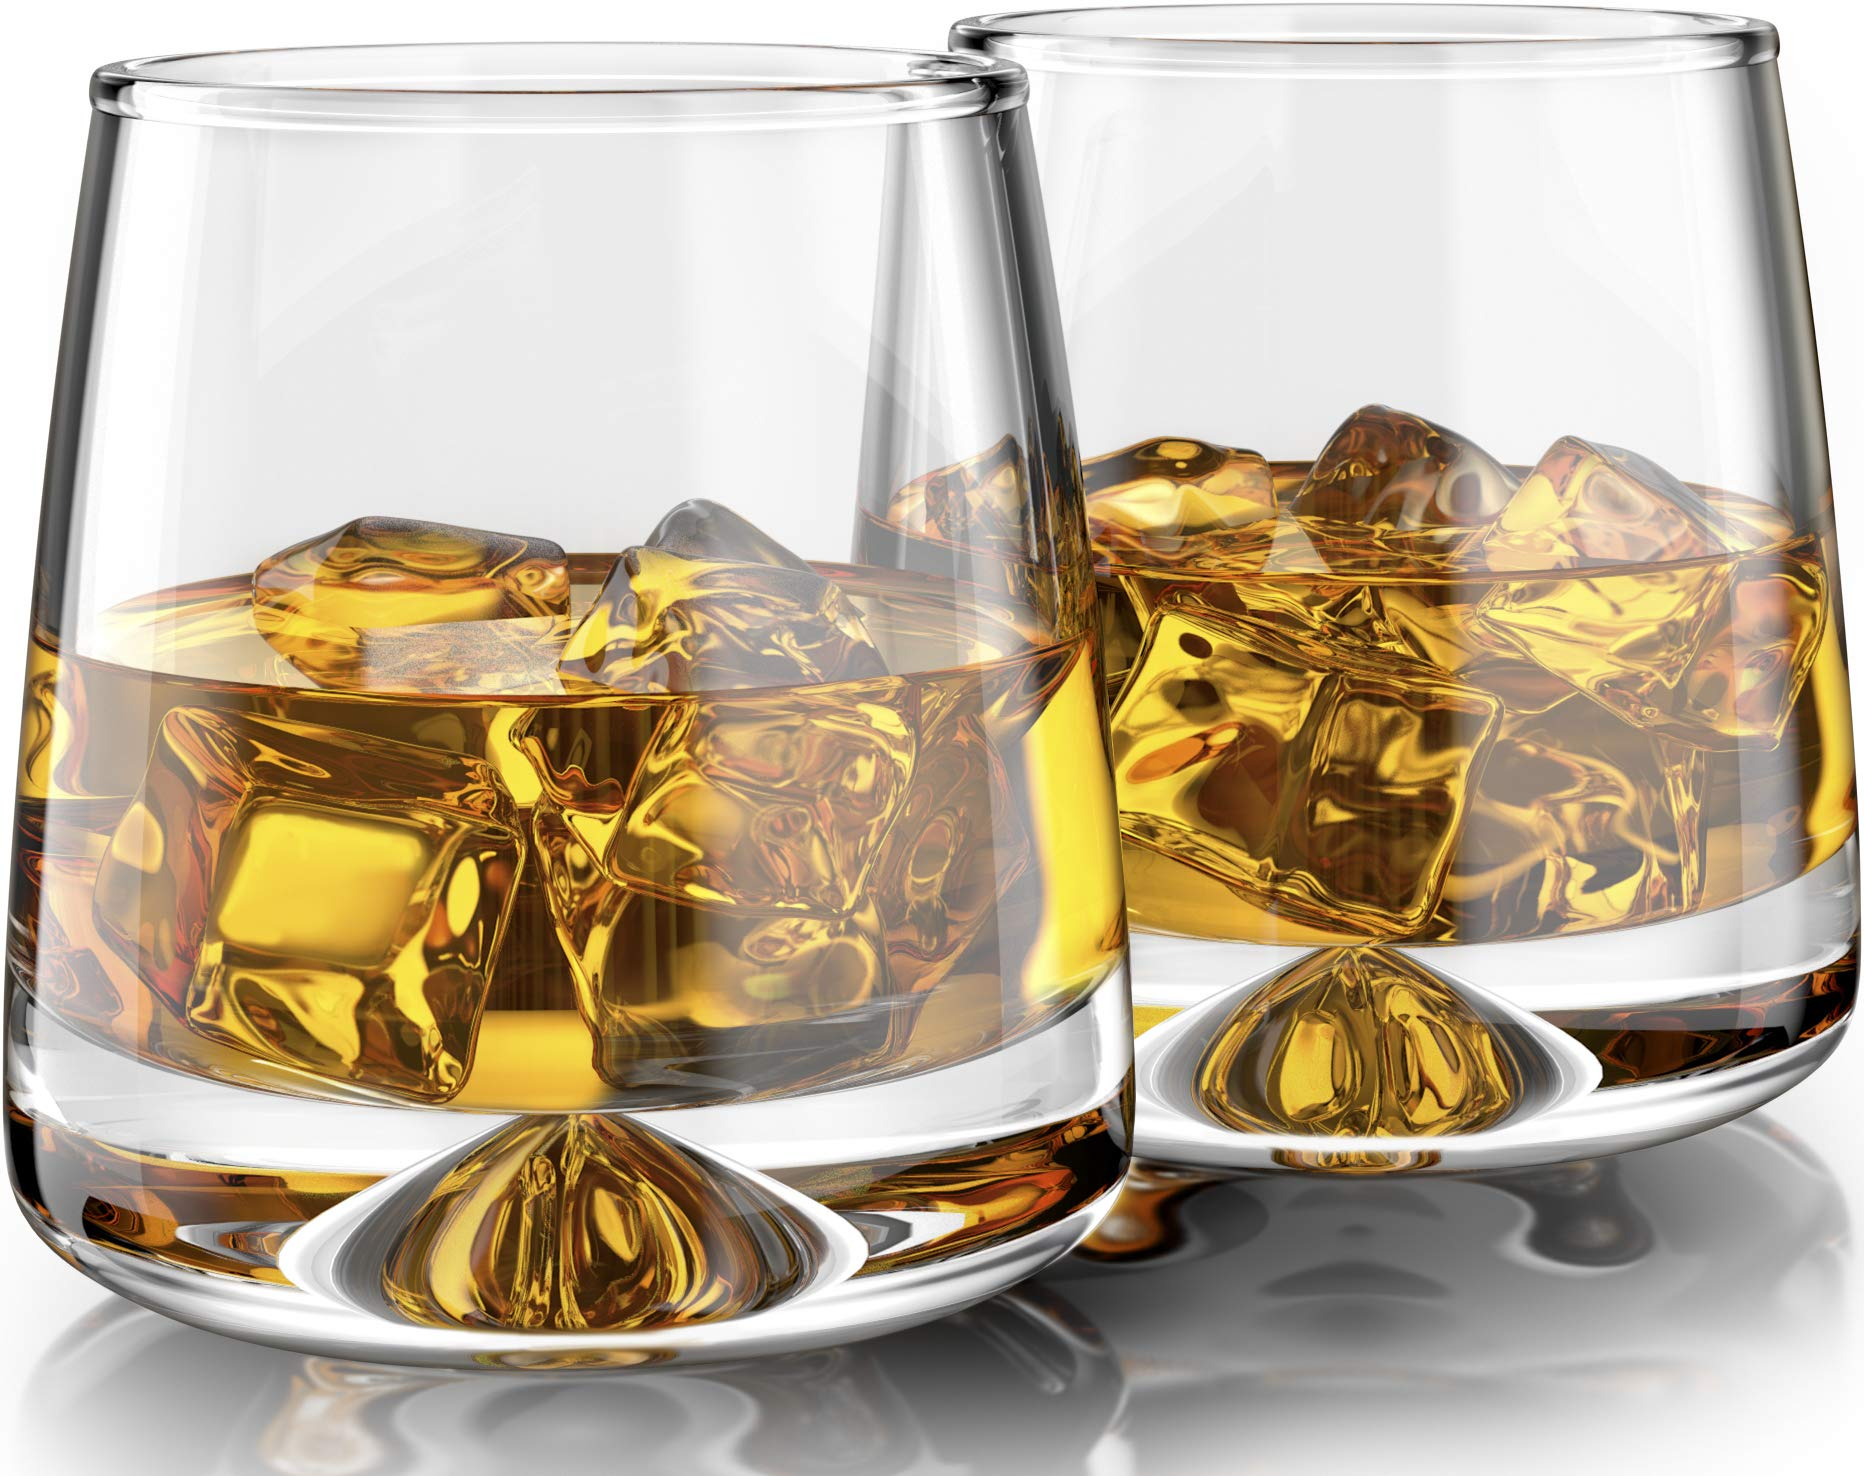 Premium Whiskey Glasses - Large - 11oz Set of 2 - Lead Free Hand Blown Crystal - Thick Weighted Base - Seamless Design - Perfect for Scotch, Bourbon, Manhattans, Old Fashioned, Cocktails. by Mofado